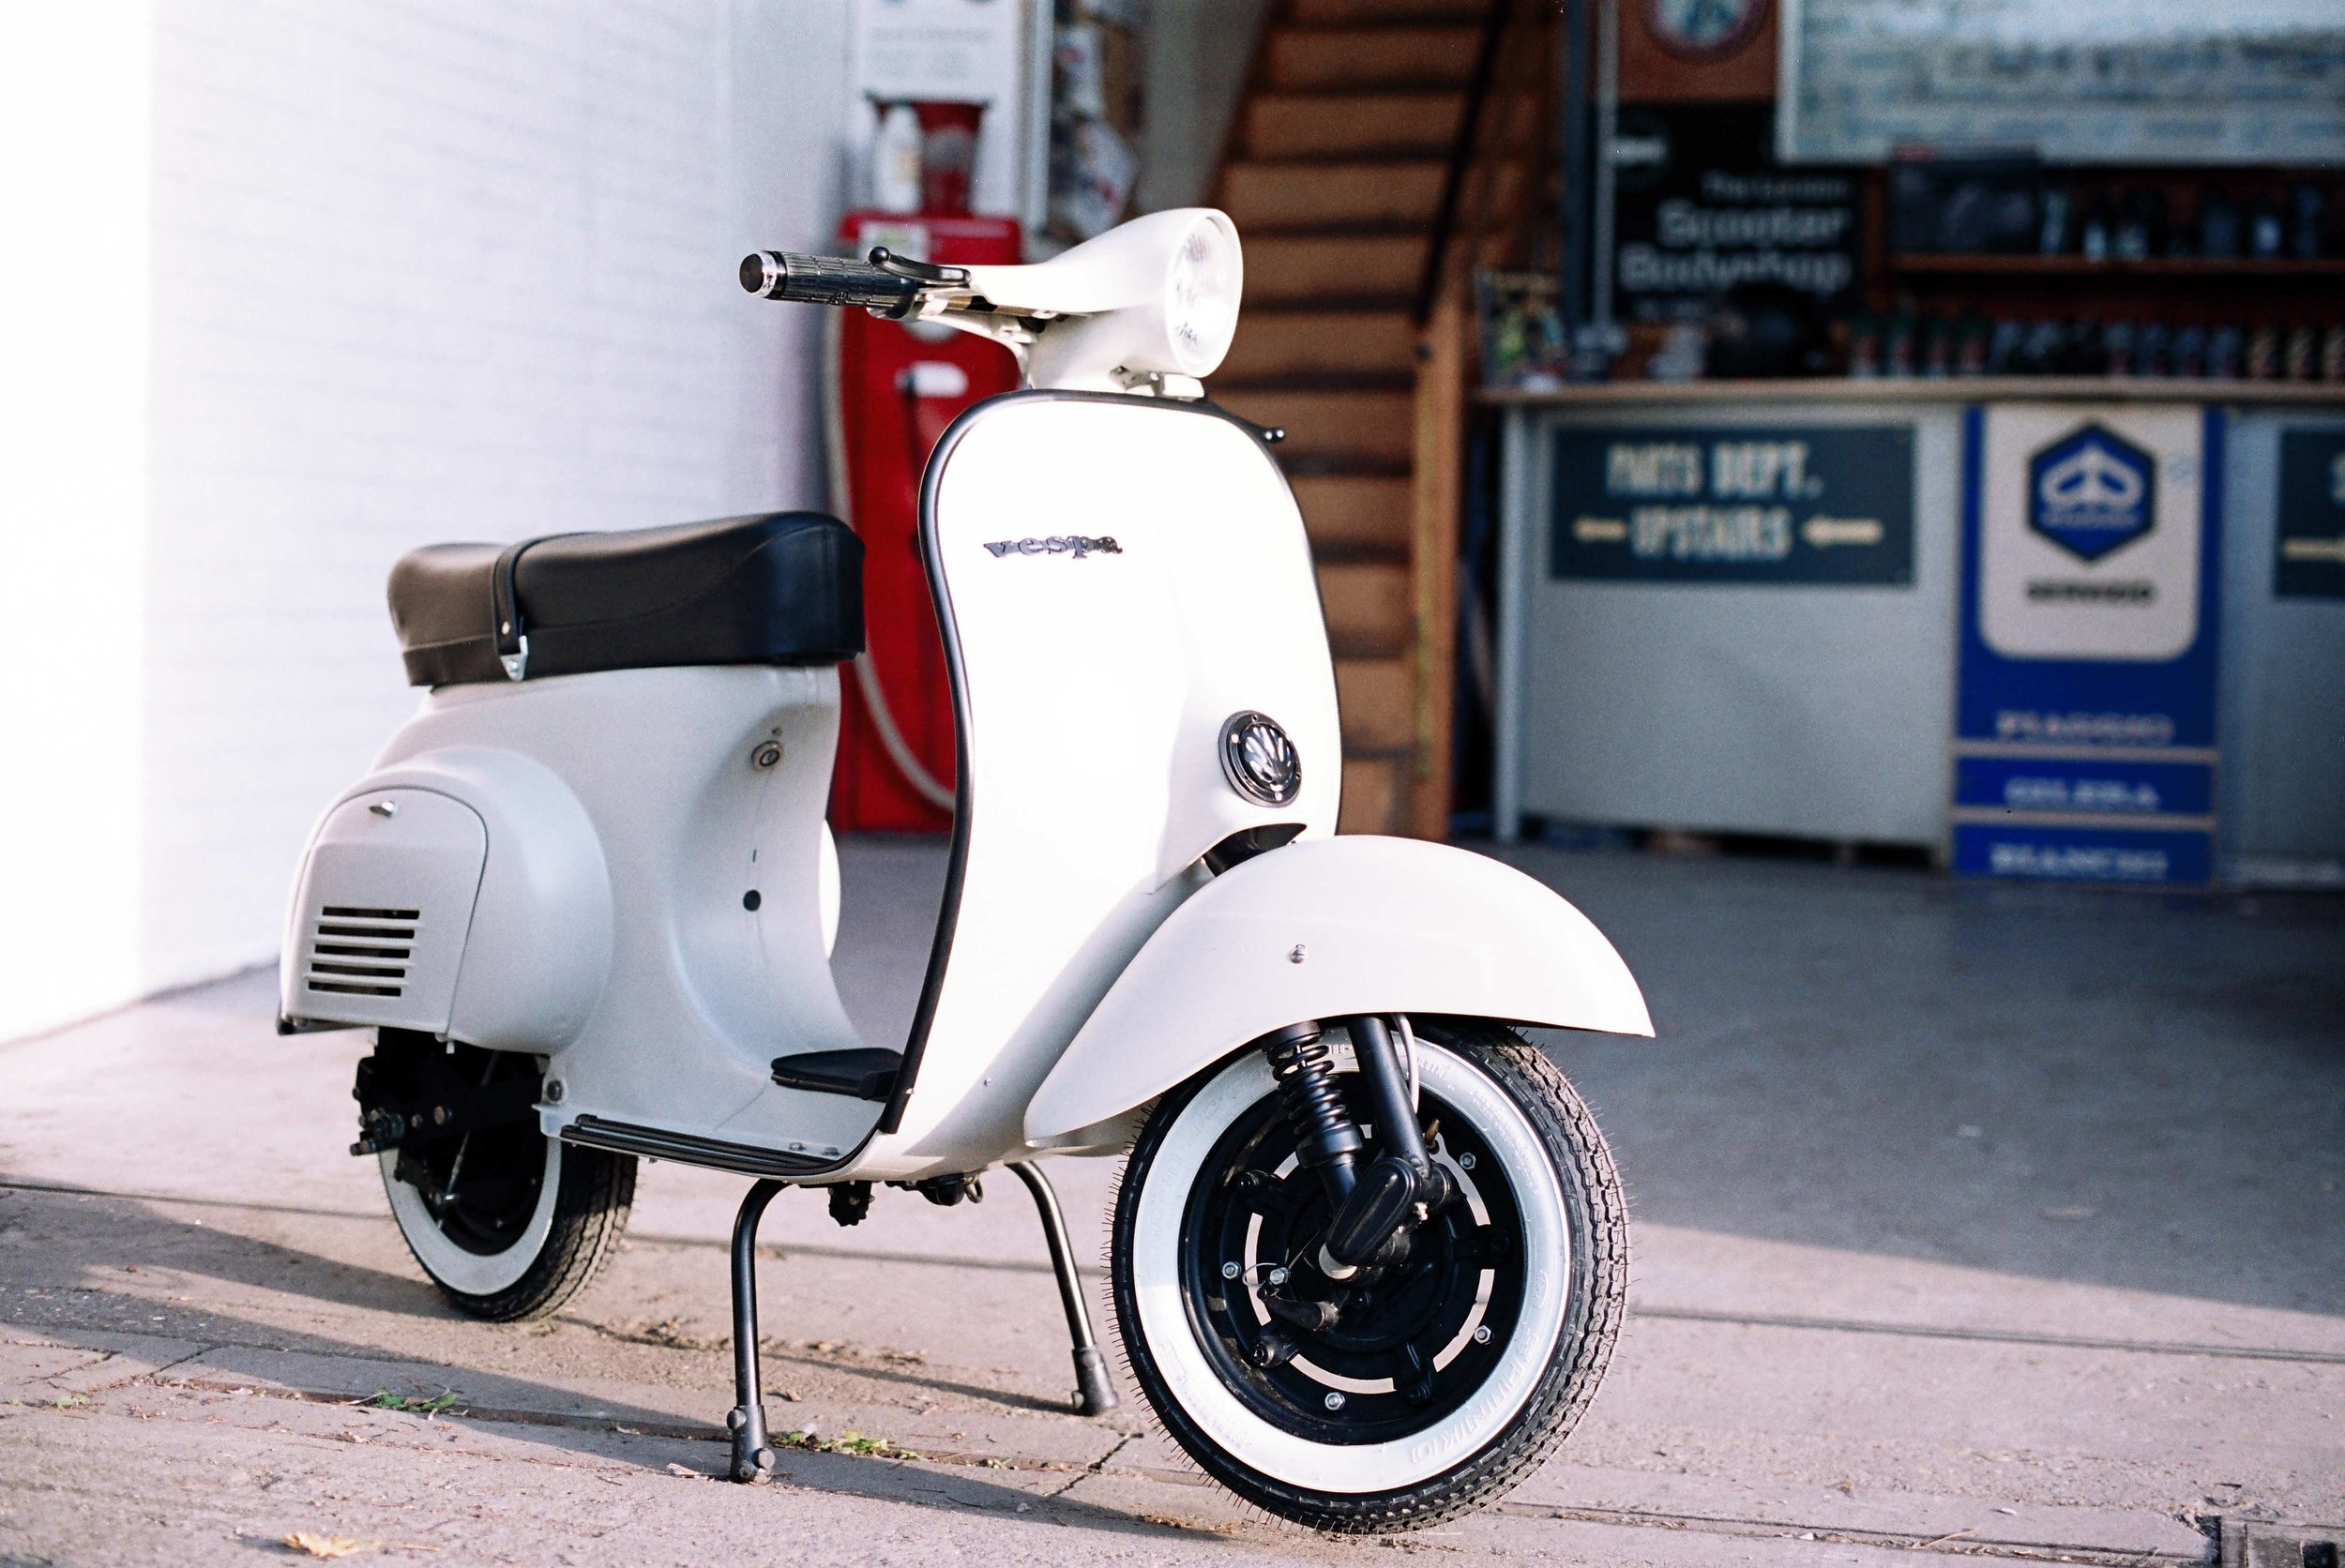 …to a stunning looking electric powered 'classic' scooter…